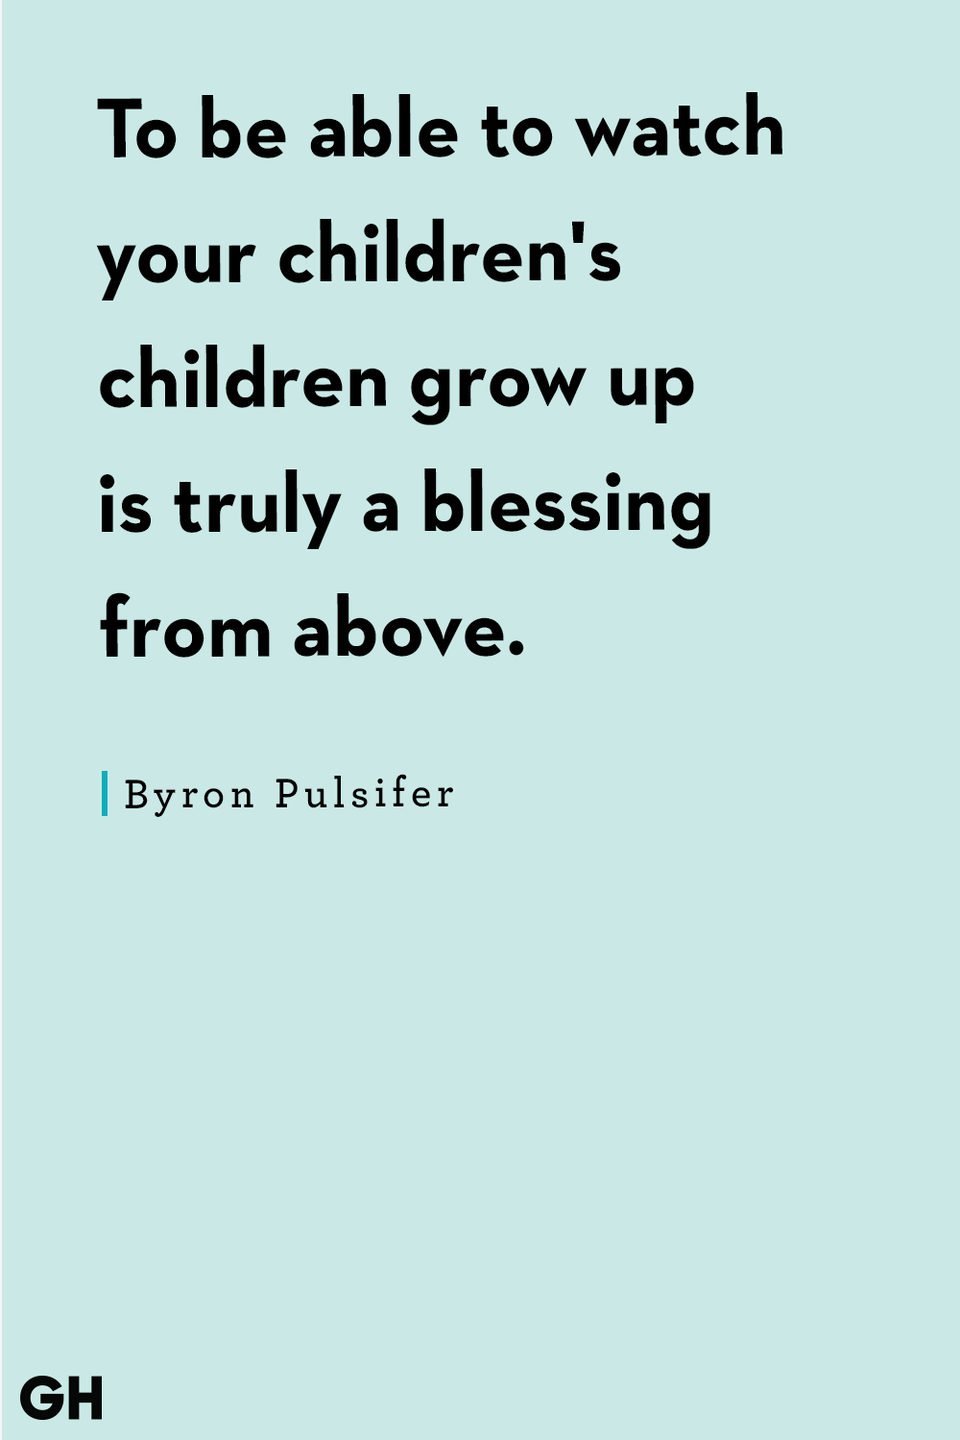 <p>To be able to watch your children's children grow up is truly a blessing from above.</p>